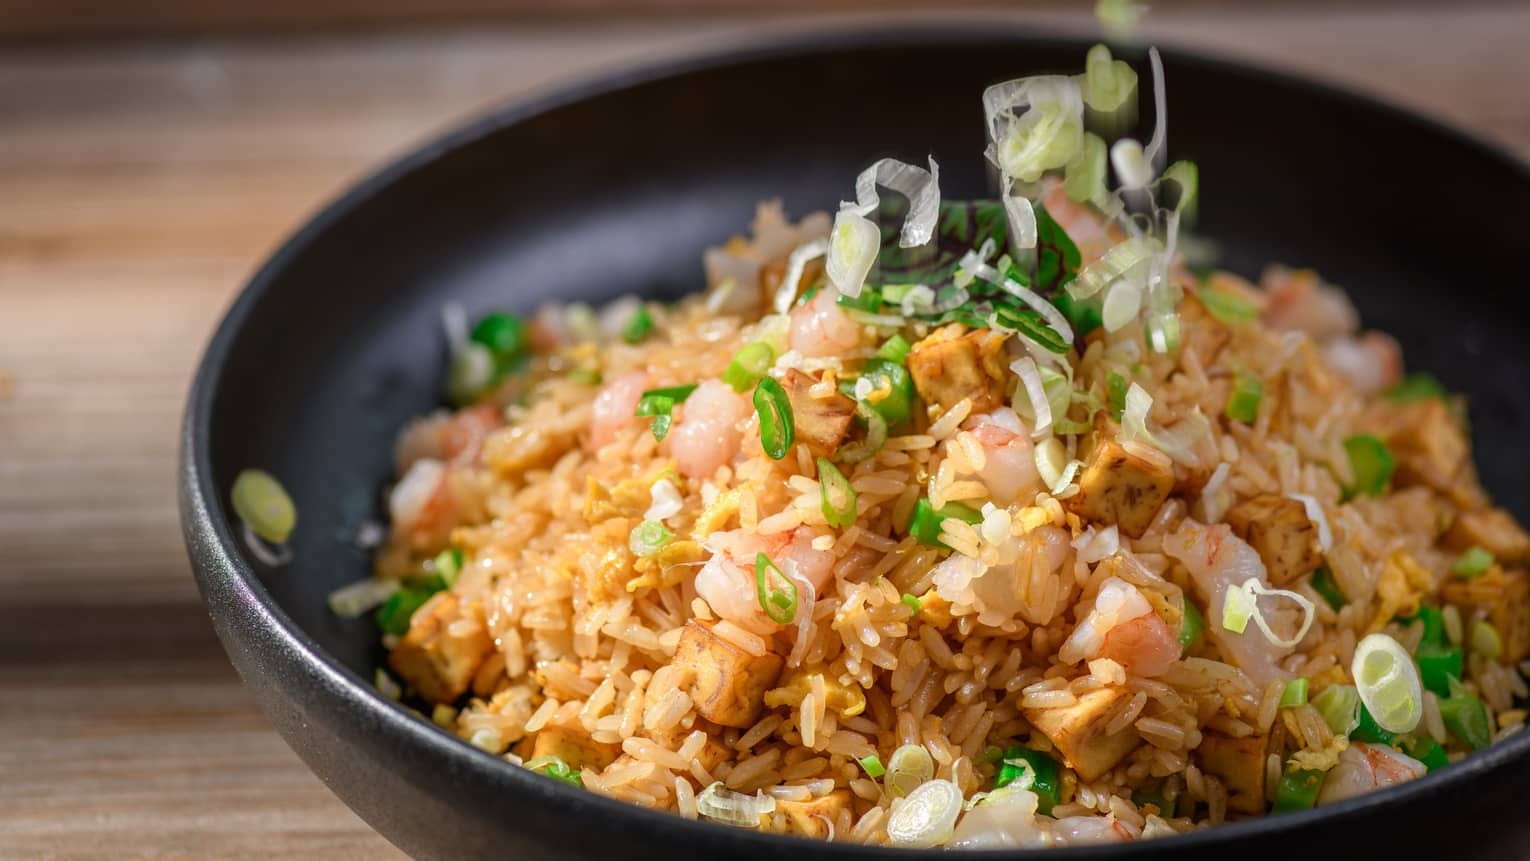 Signature fried rice with shrimp, roasted pork and chives